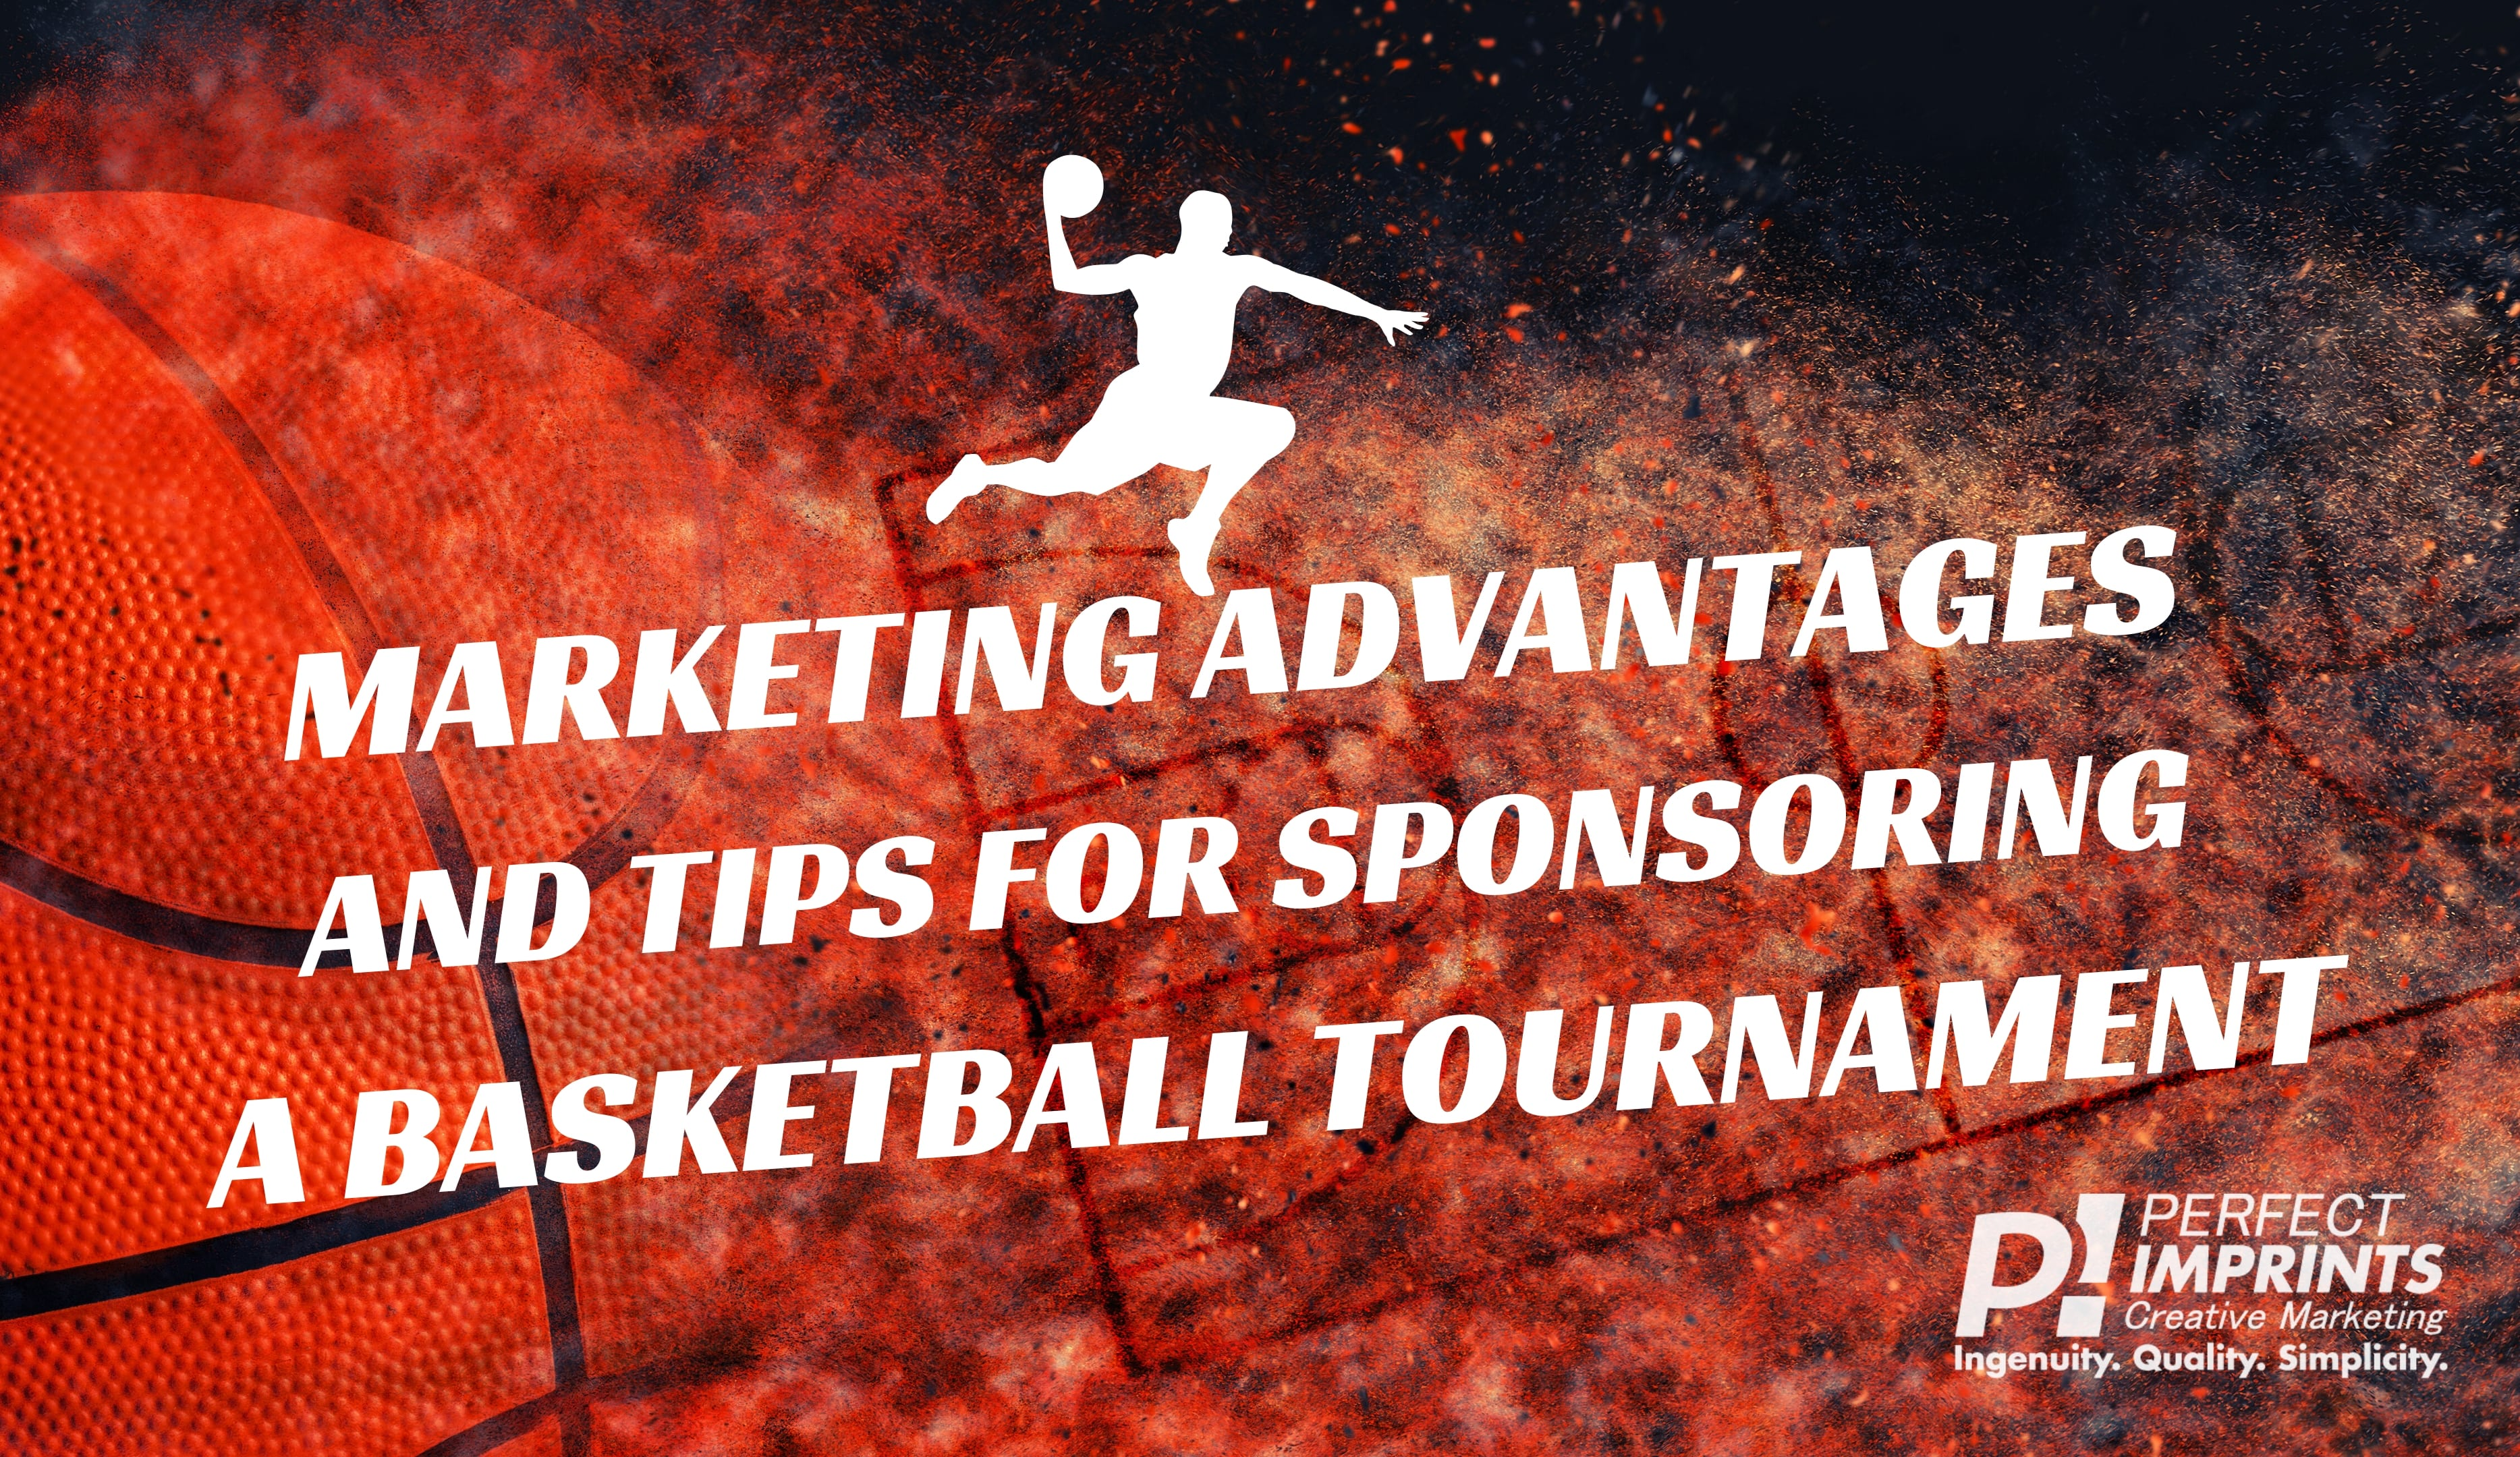 Marketing Advantages and Tips for Sponsoring a Basketball Tournament